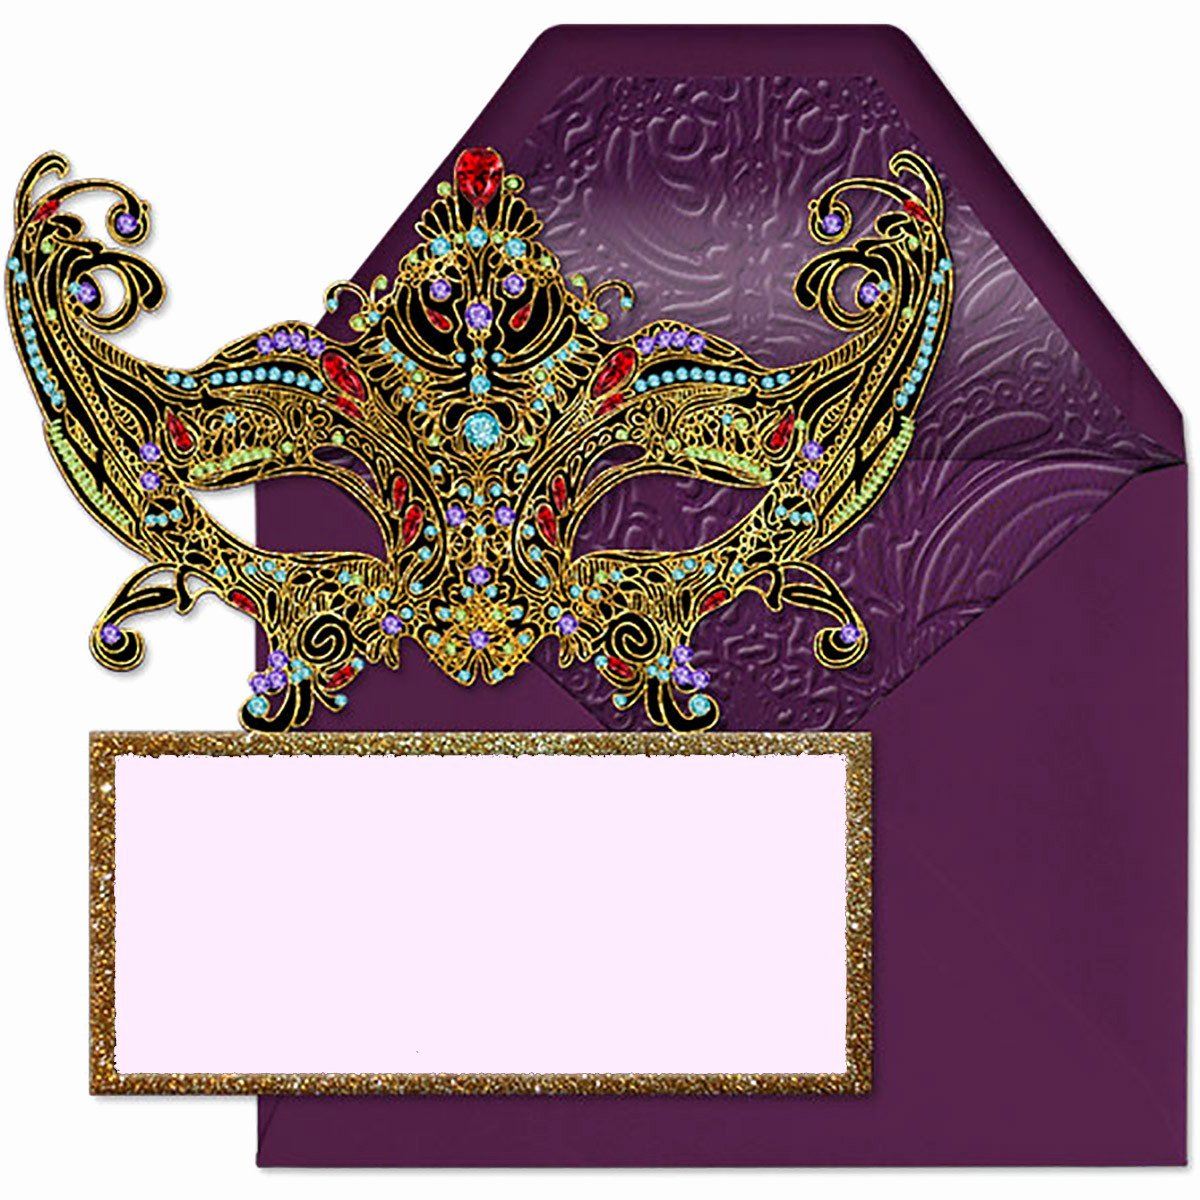 Masquerade Invitations Template Free Elegant Free Printable Masquerade Invitation Templates